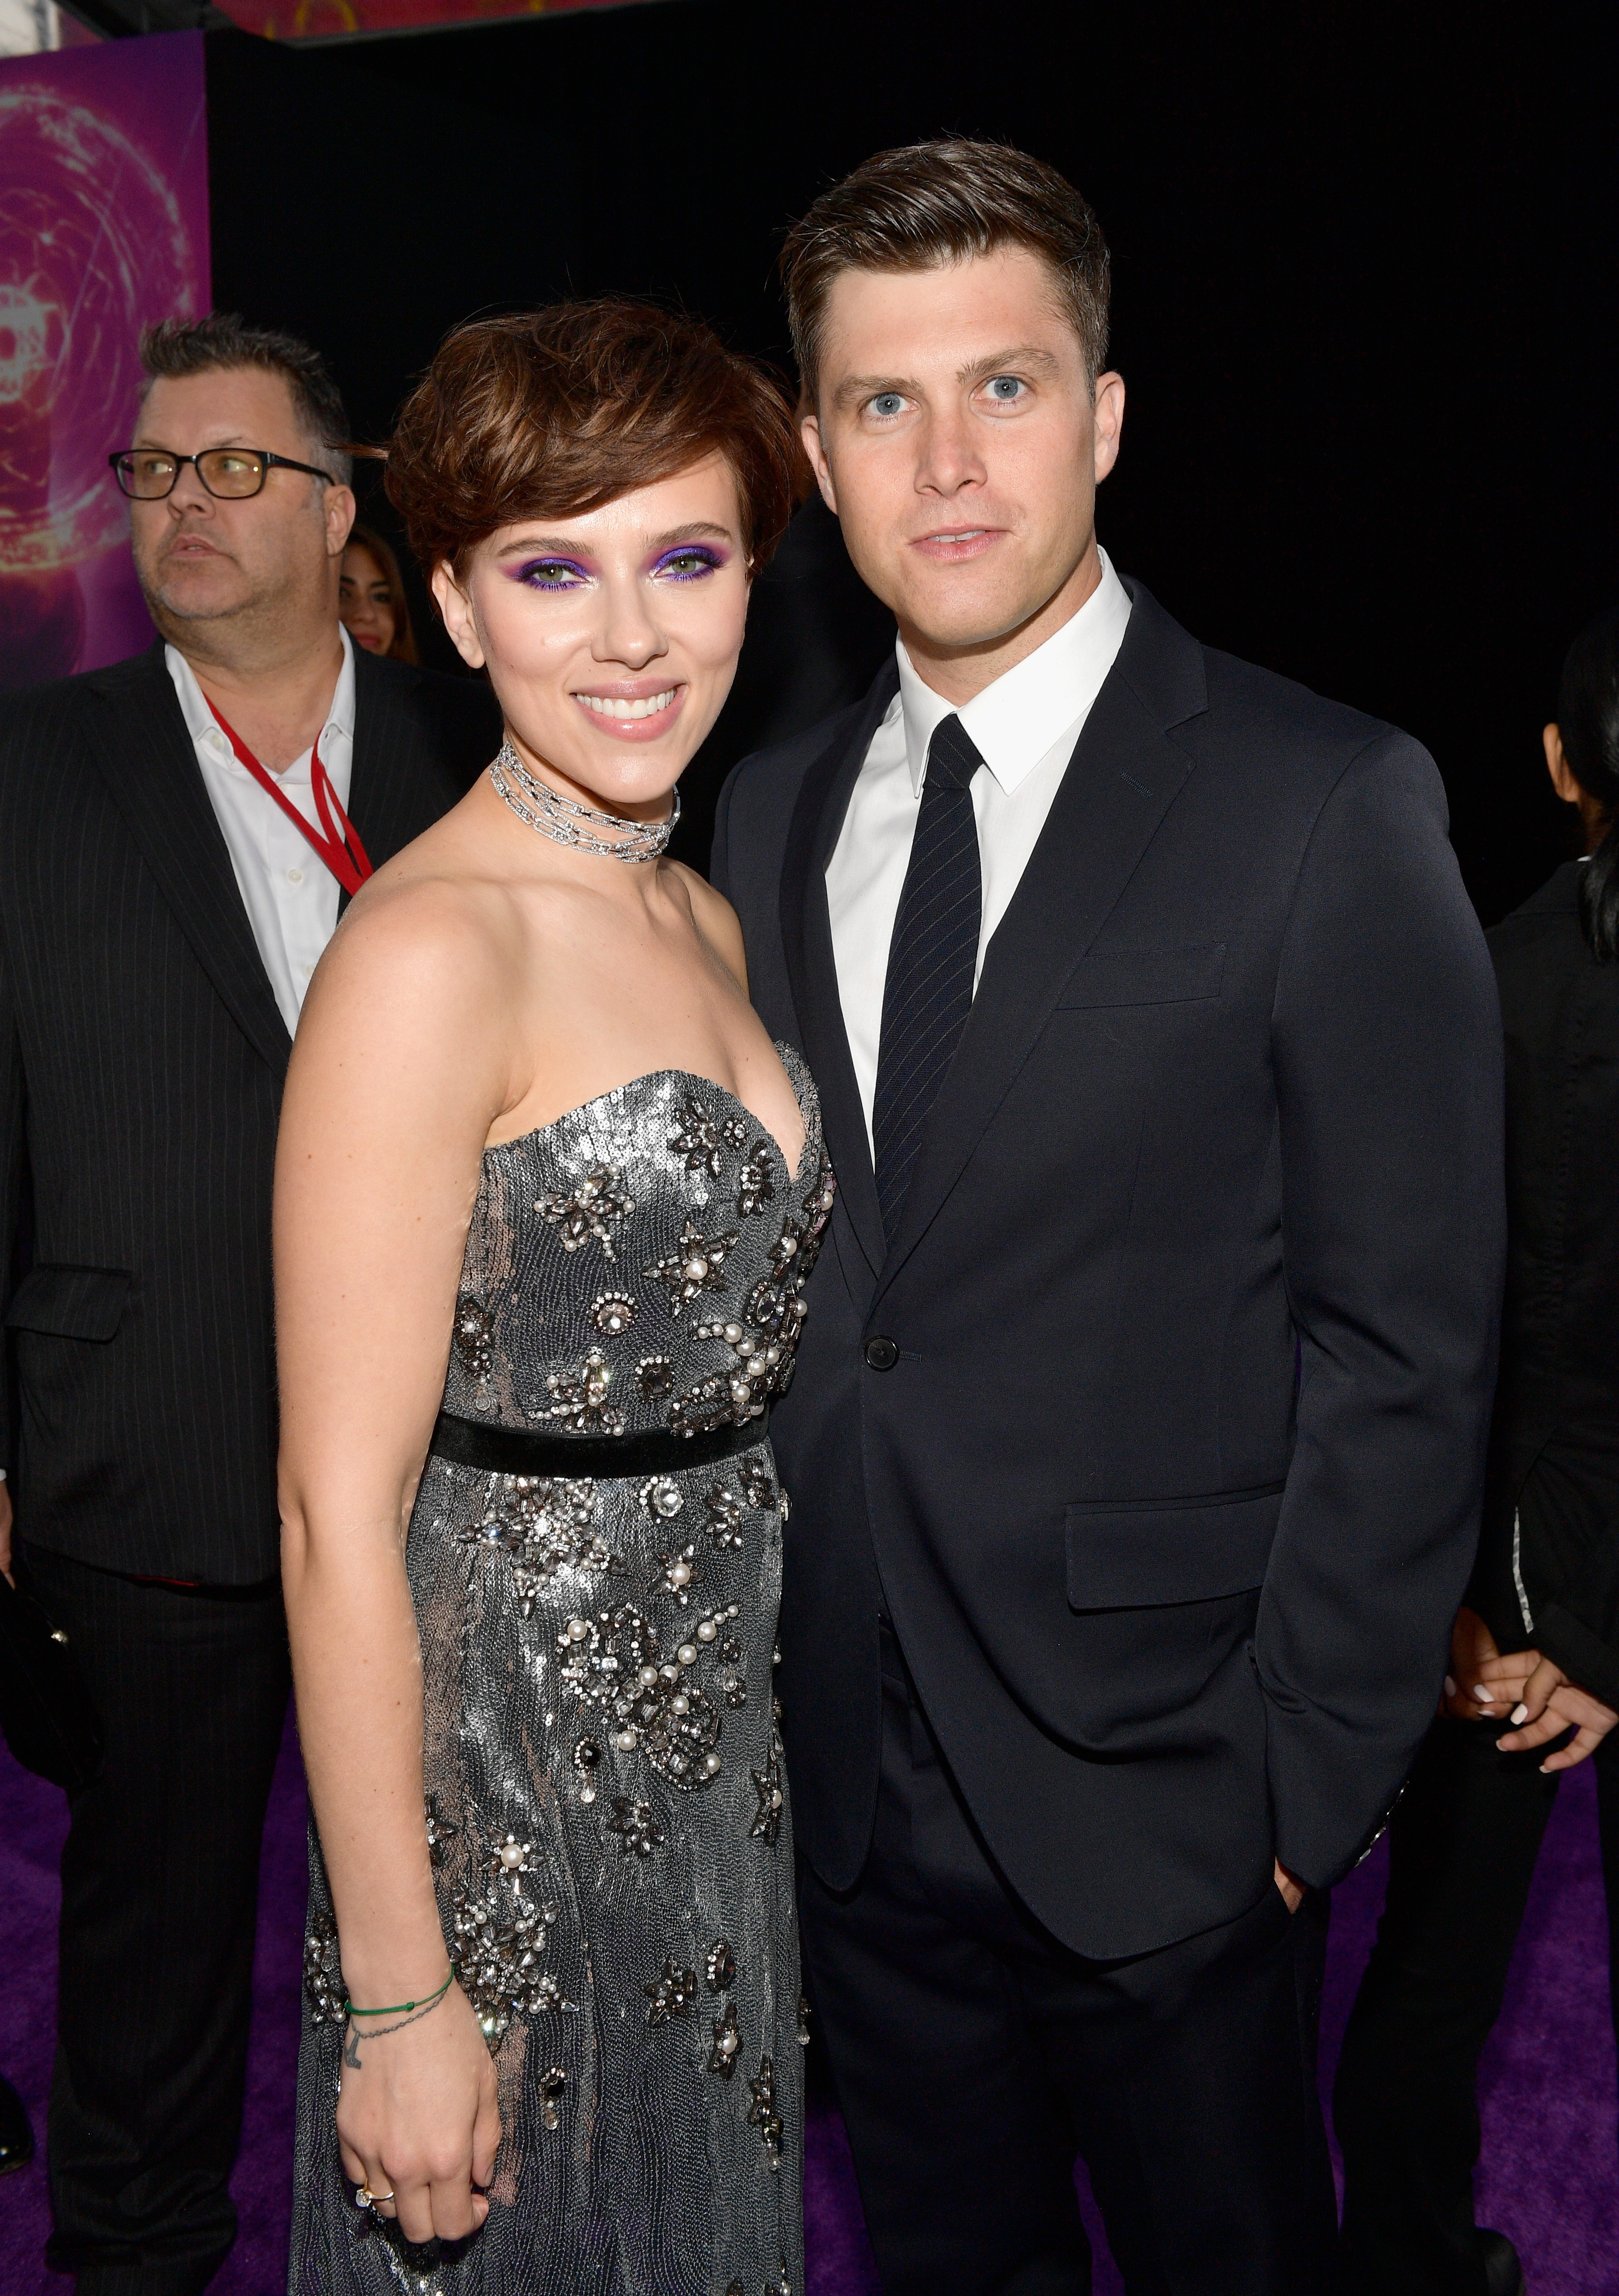 Actress Scarlett Johansson at the event of the release of the third Avengers and in the company of her friend, the comedian, Colin Jost (photo: Getty Images)